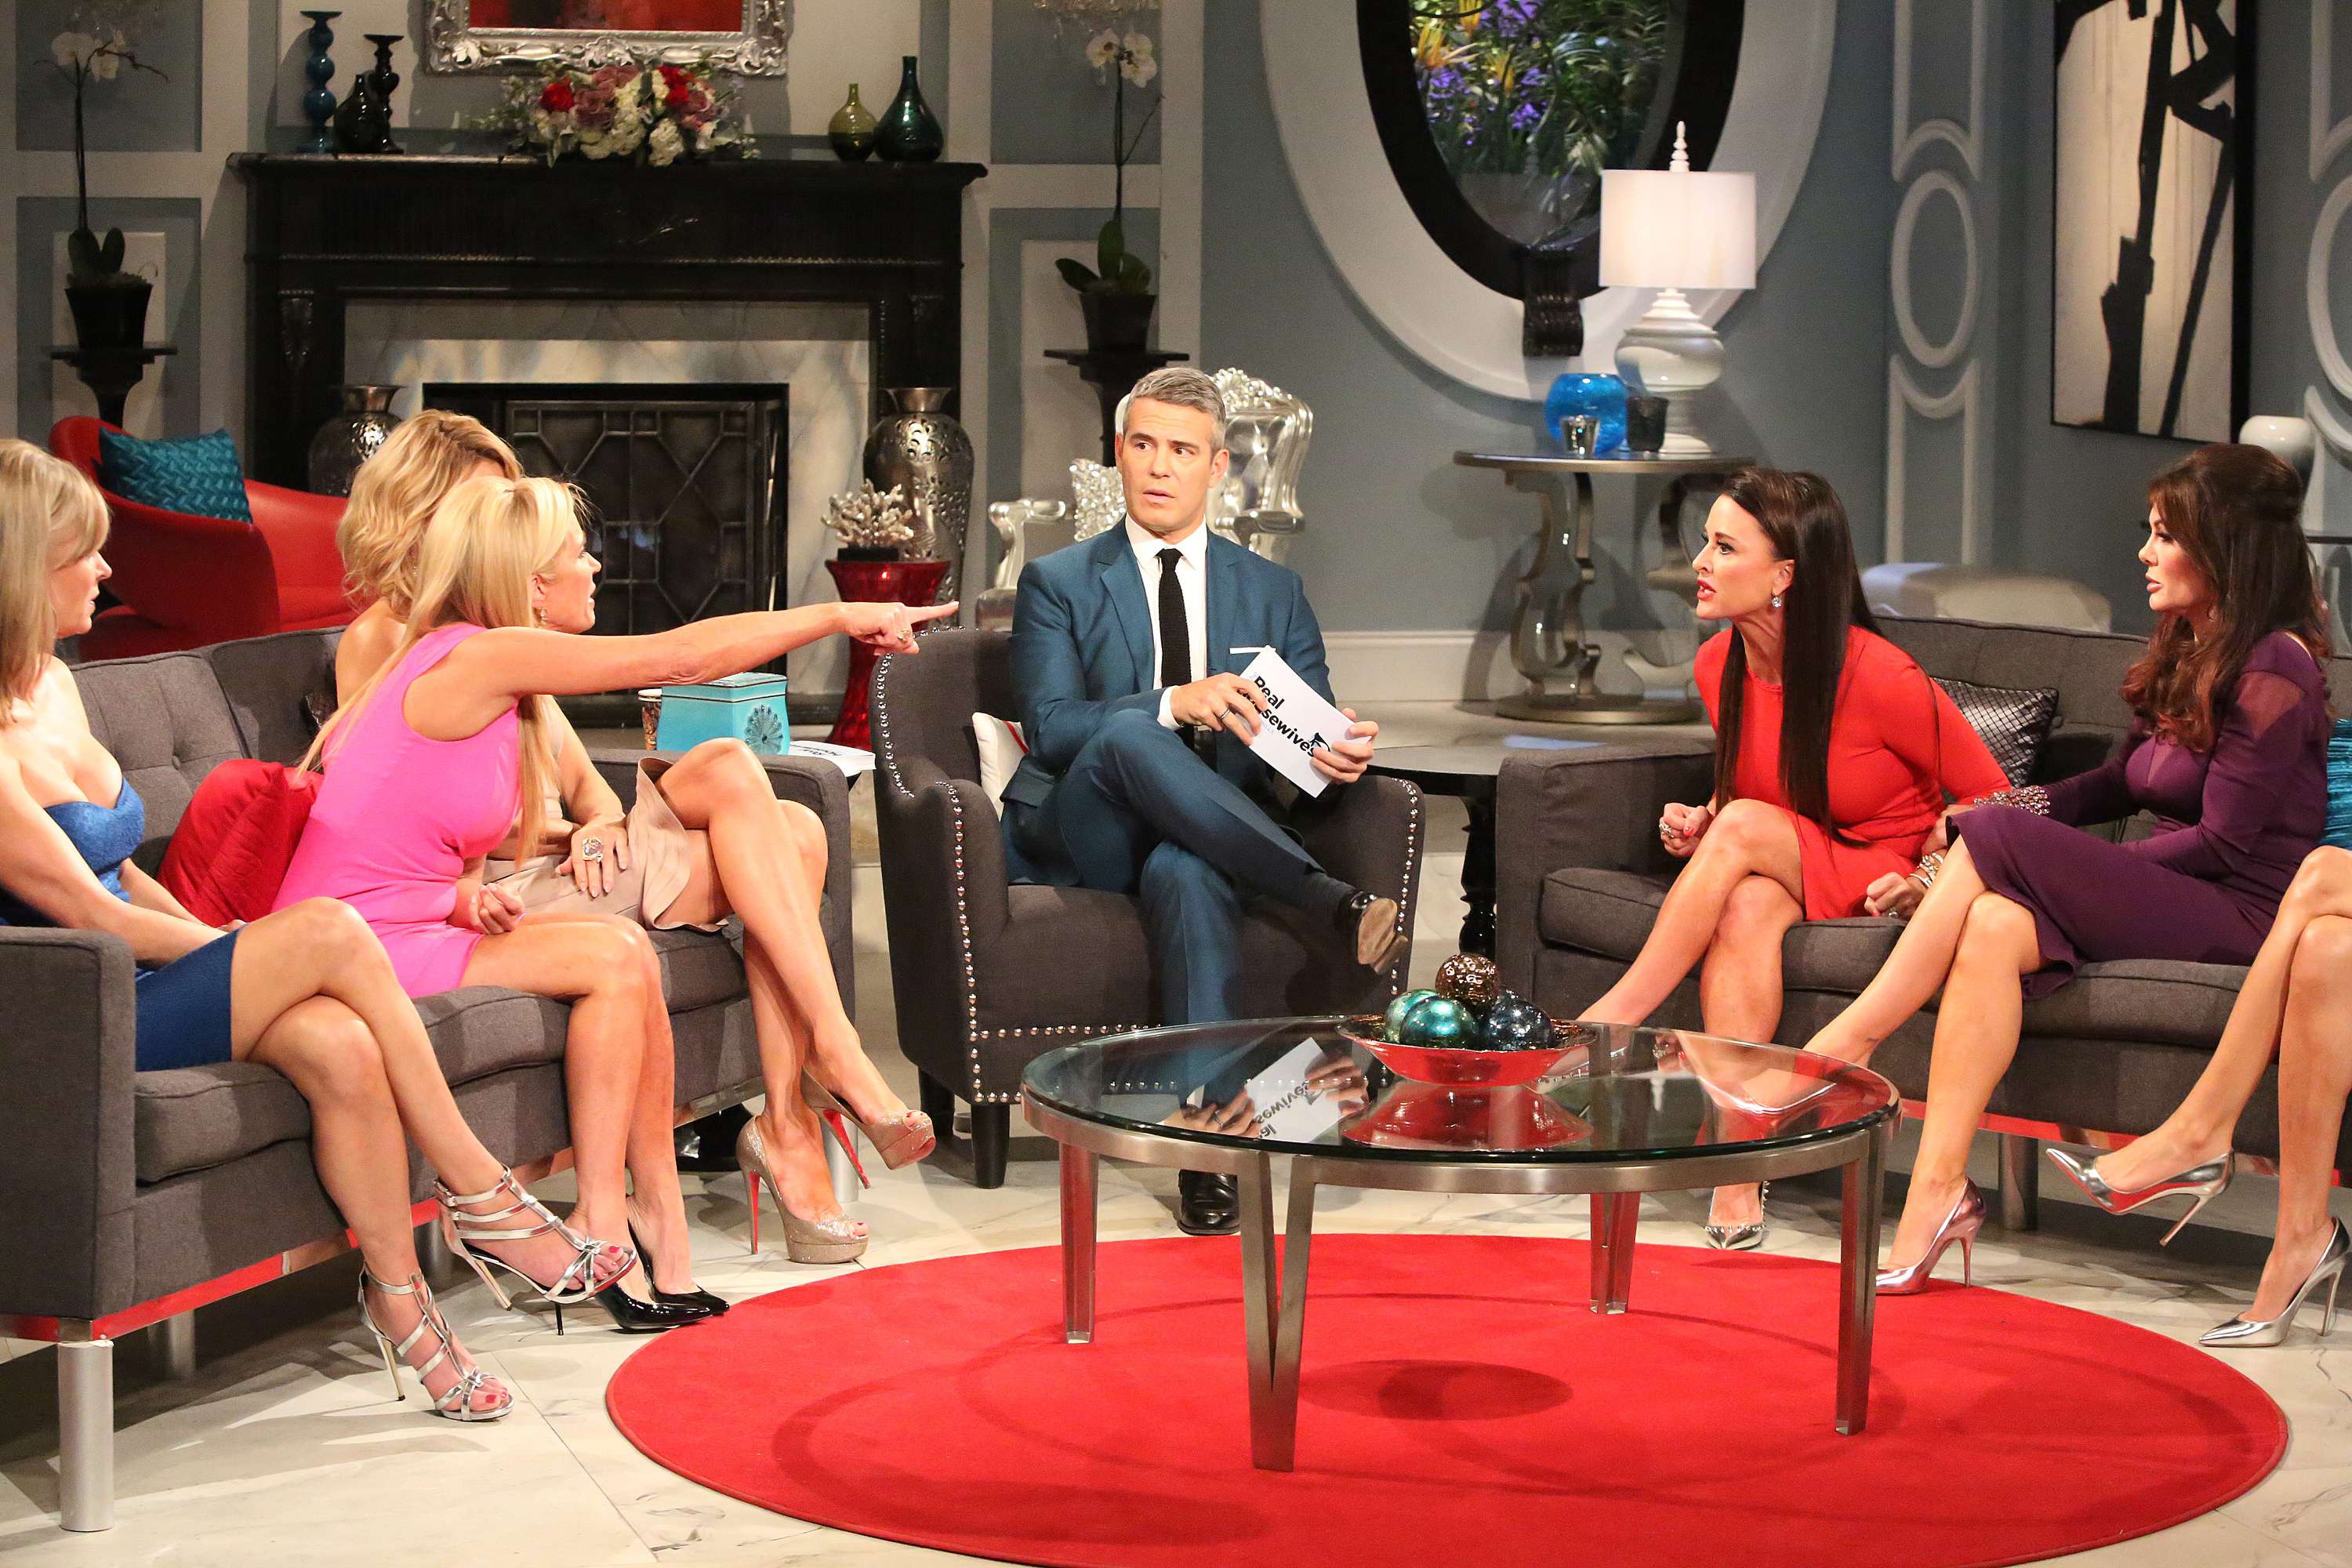 Are The Real Housewives Shows Scripted Leaked Texts And Email Sure Make It Seem That Way